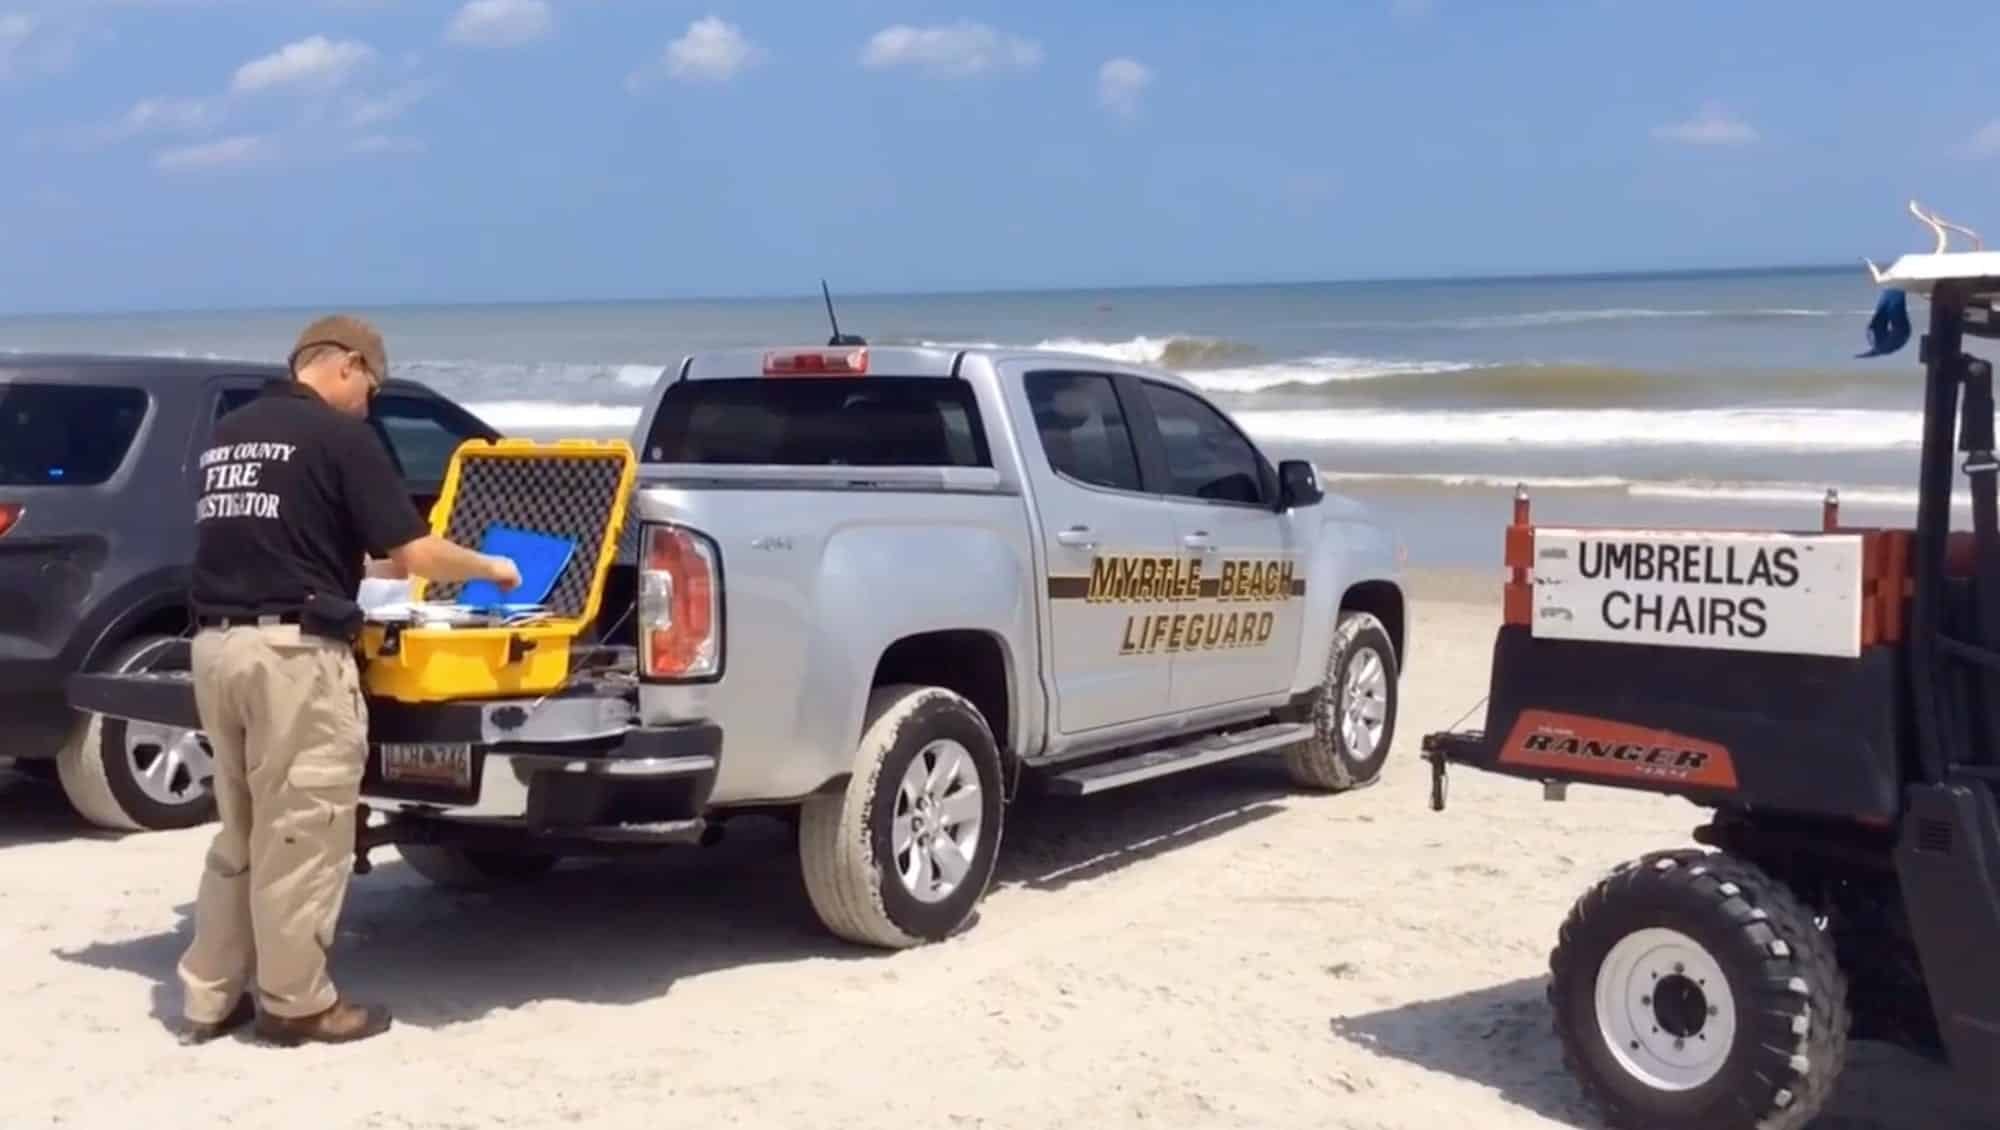 Drone used in Myrtle Beach search operations for missing swimmer